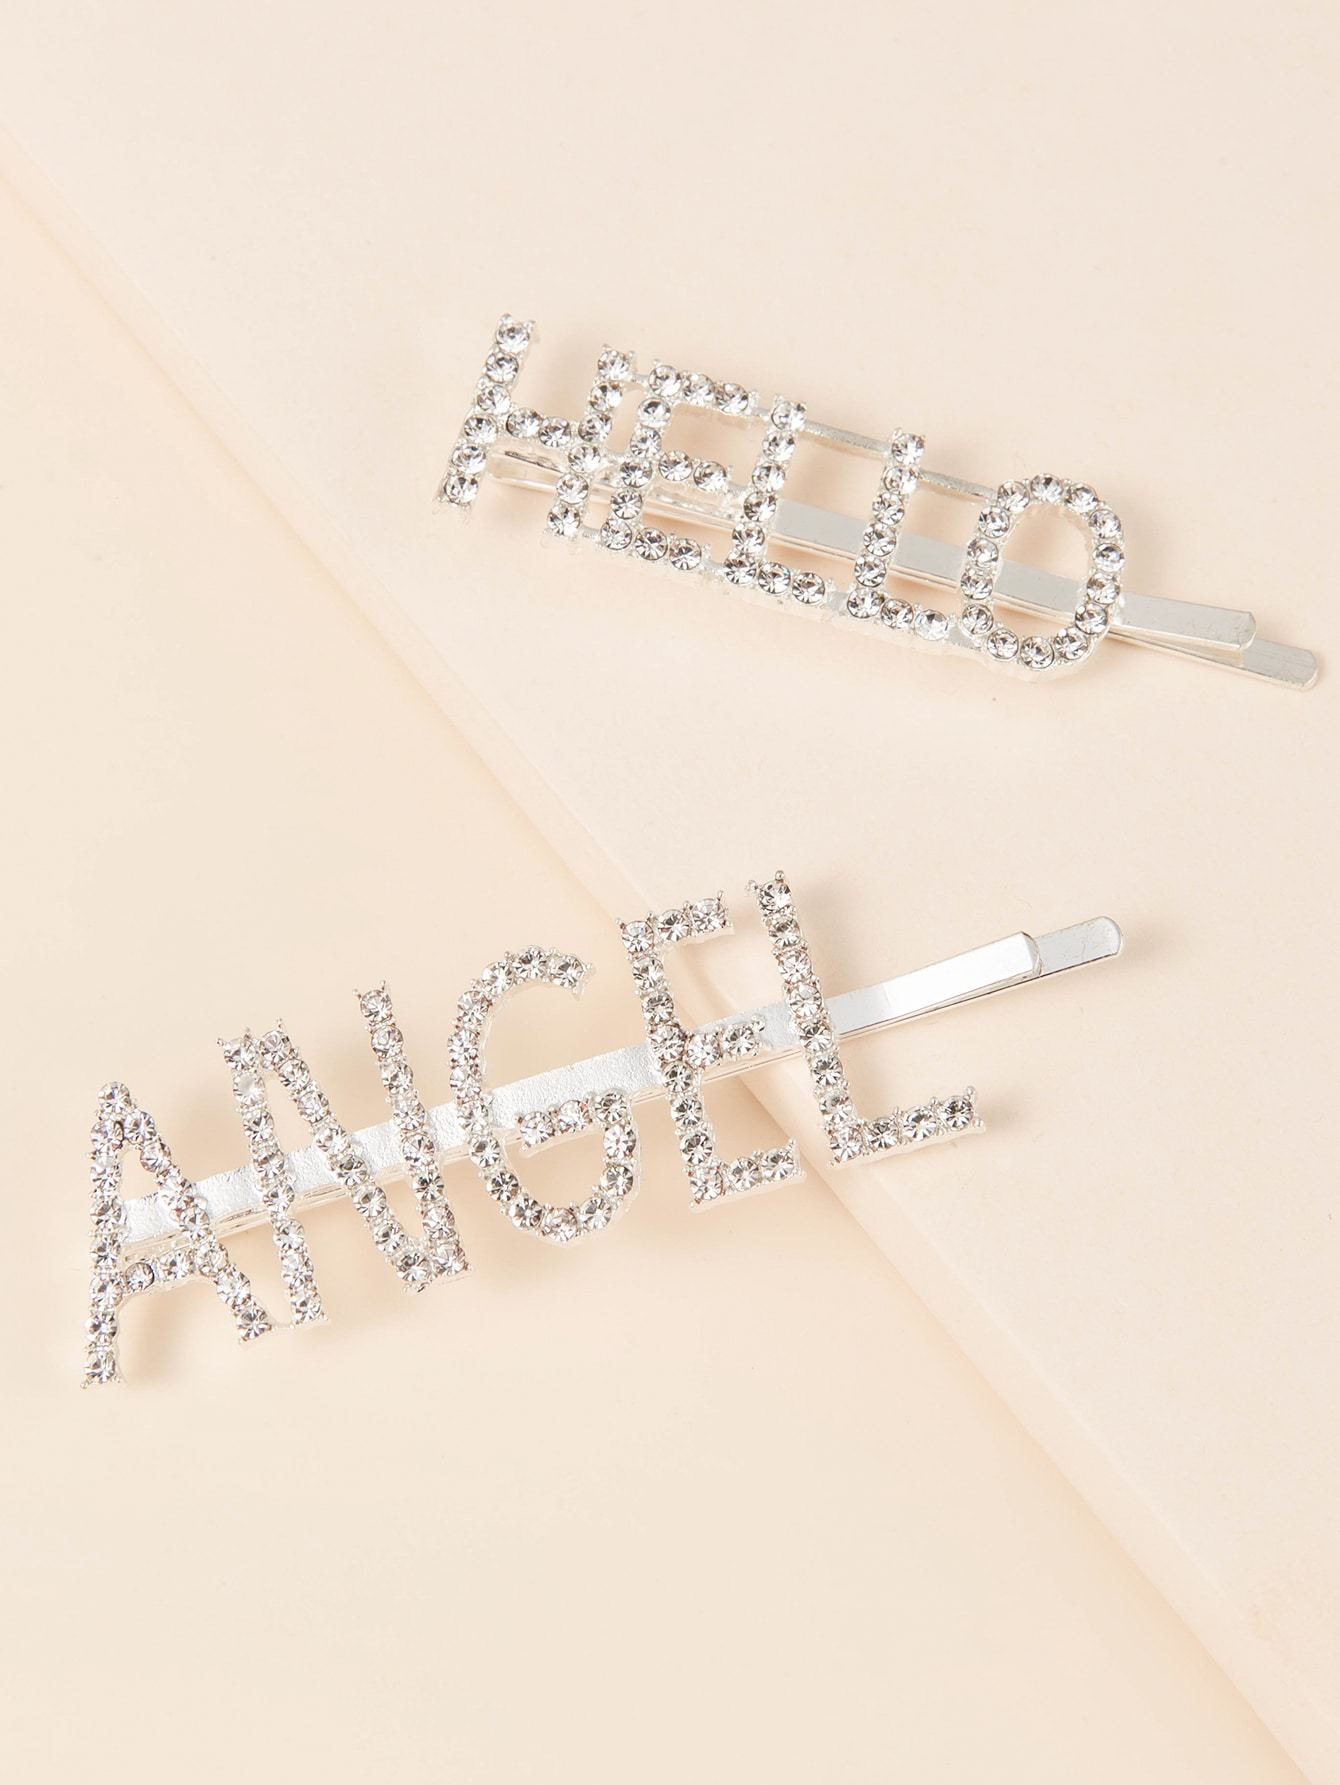 2pcs Rhinestone Letter Decor Bobby Pin Shop n Save Pakistan